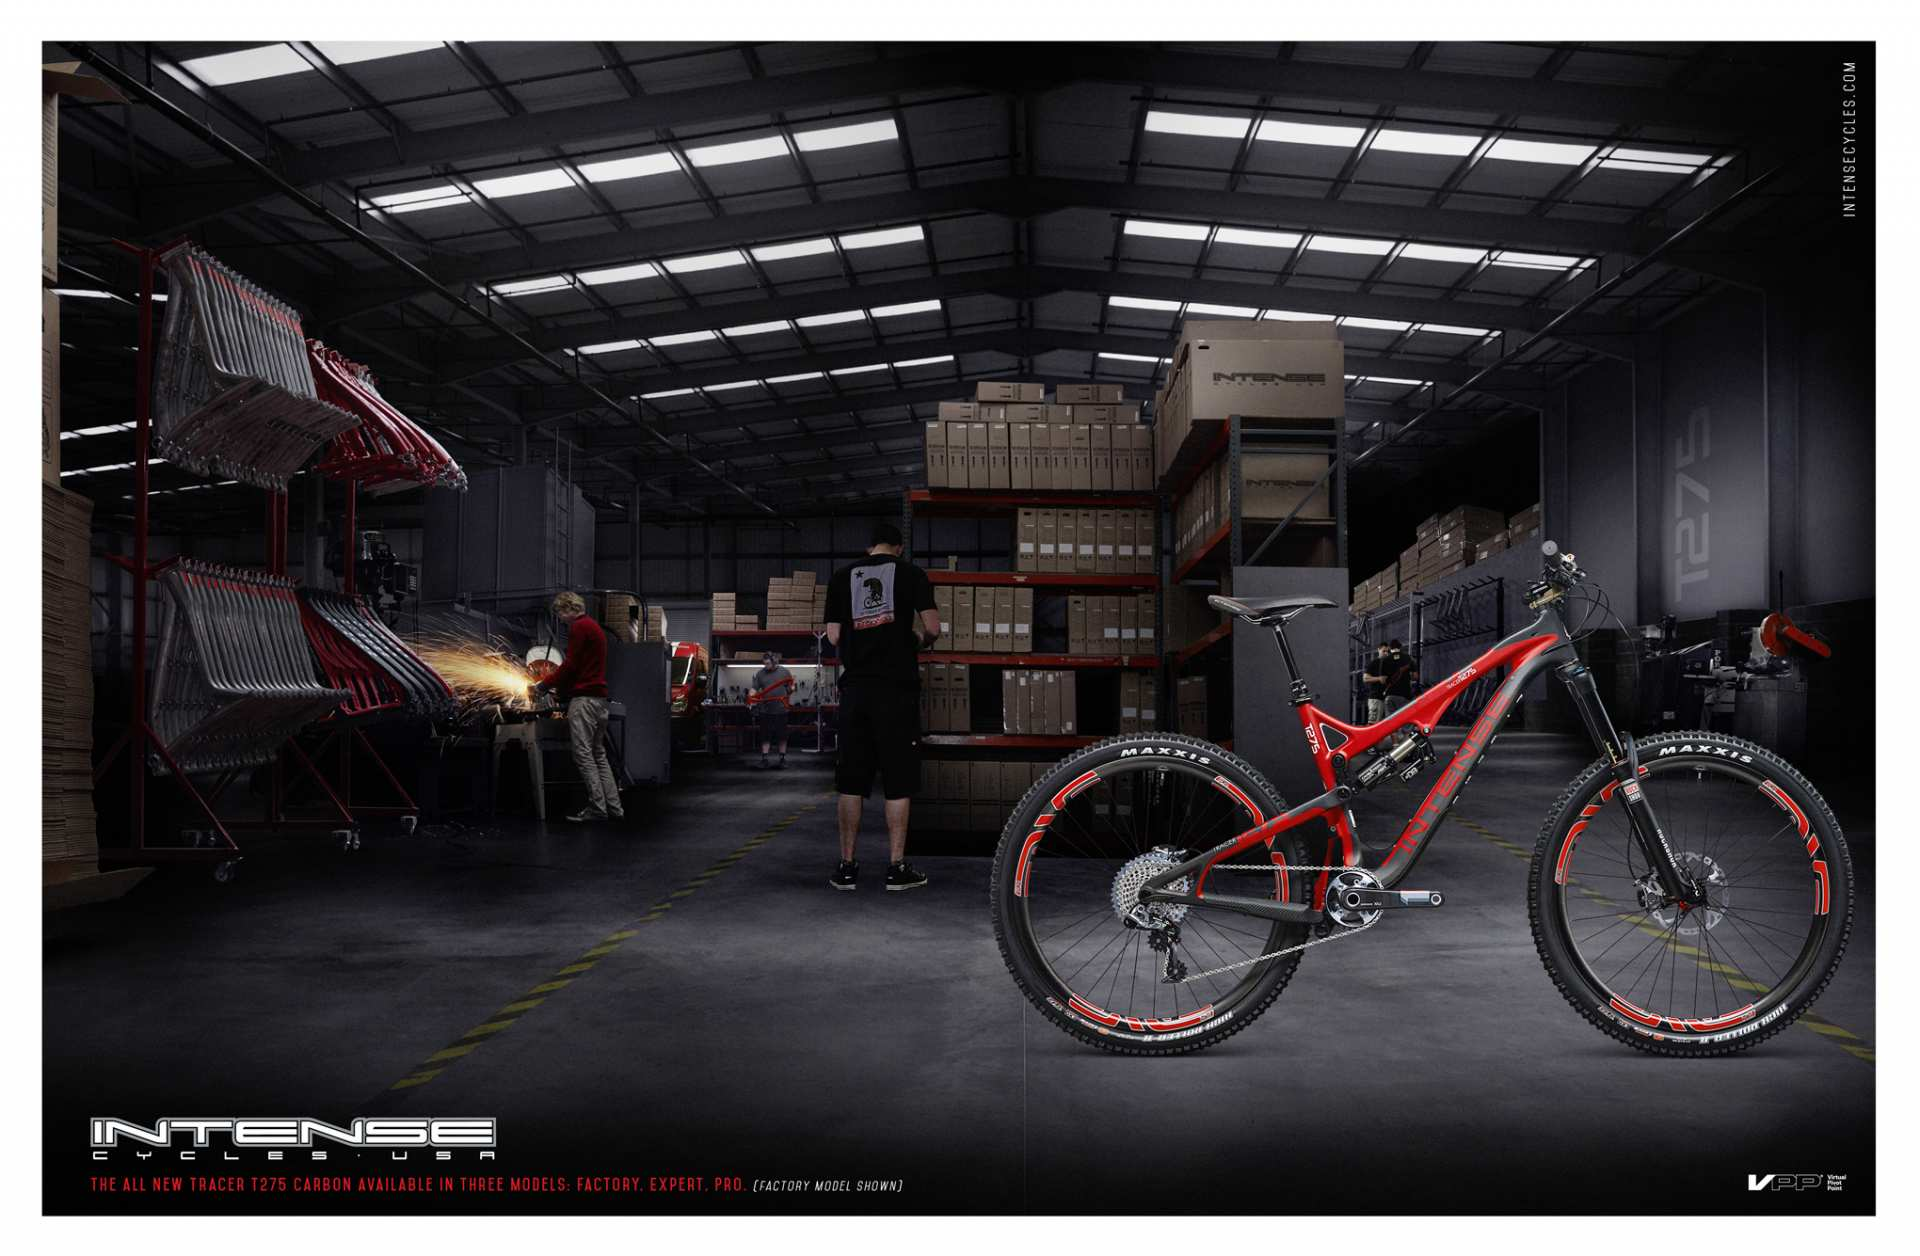 Intense Cycles USA - The Creative Bar Case Study - marketing and branding materials